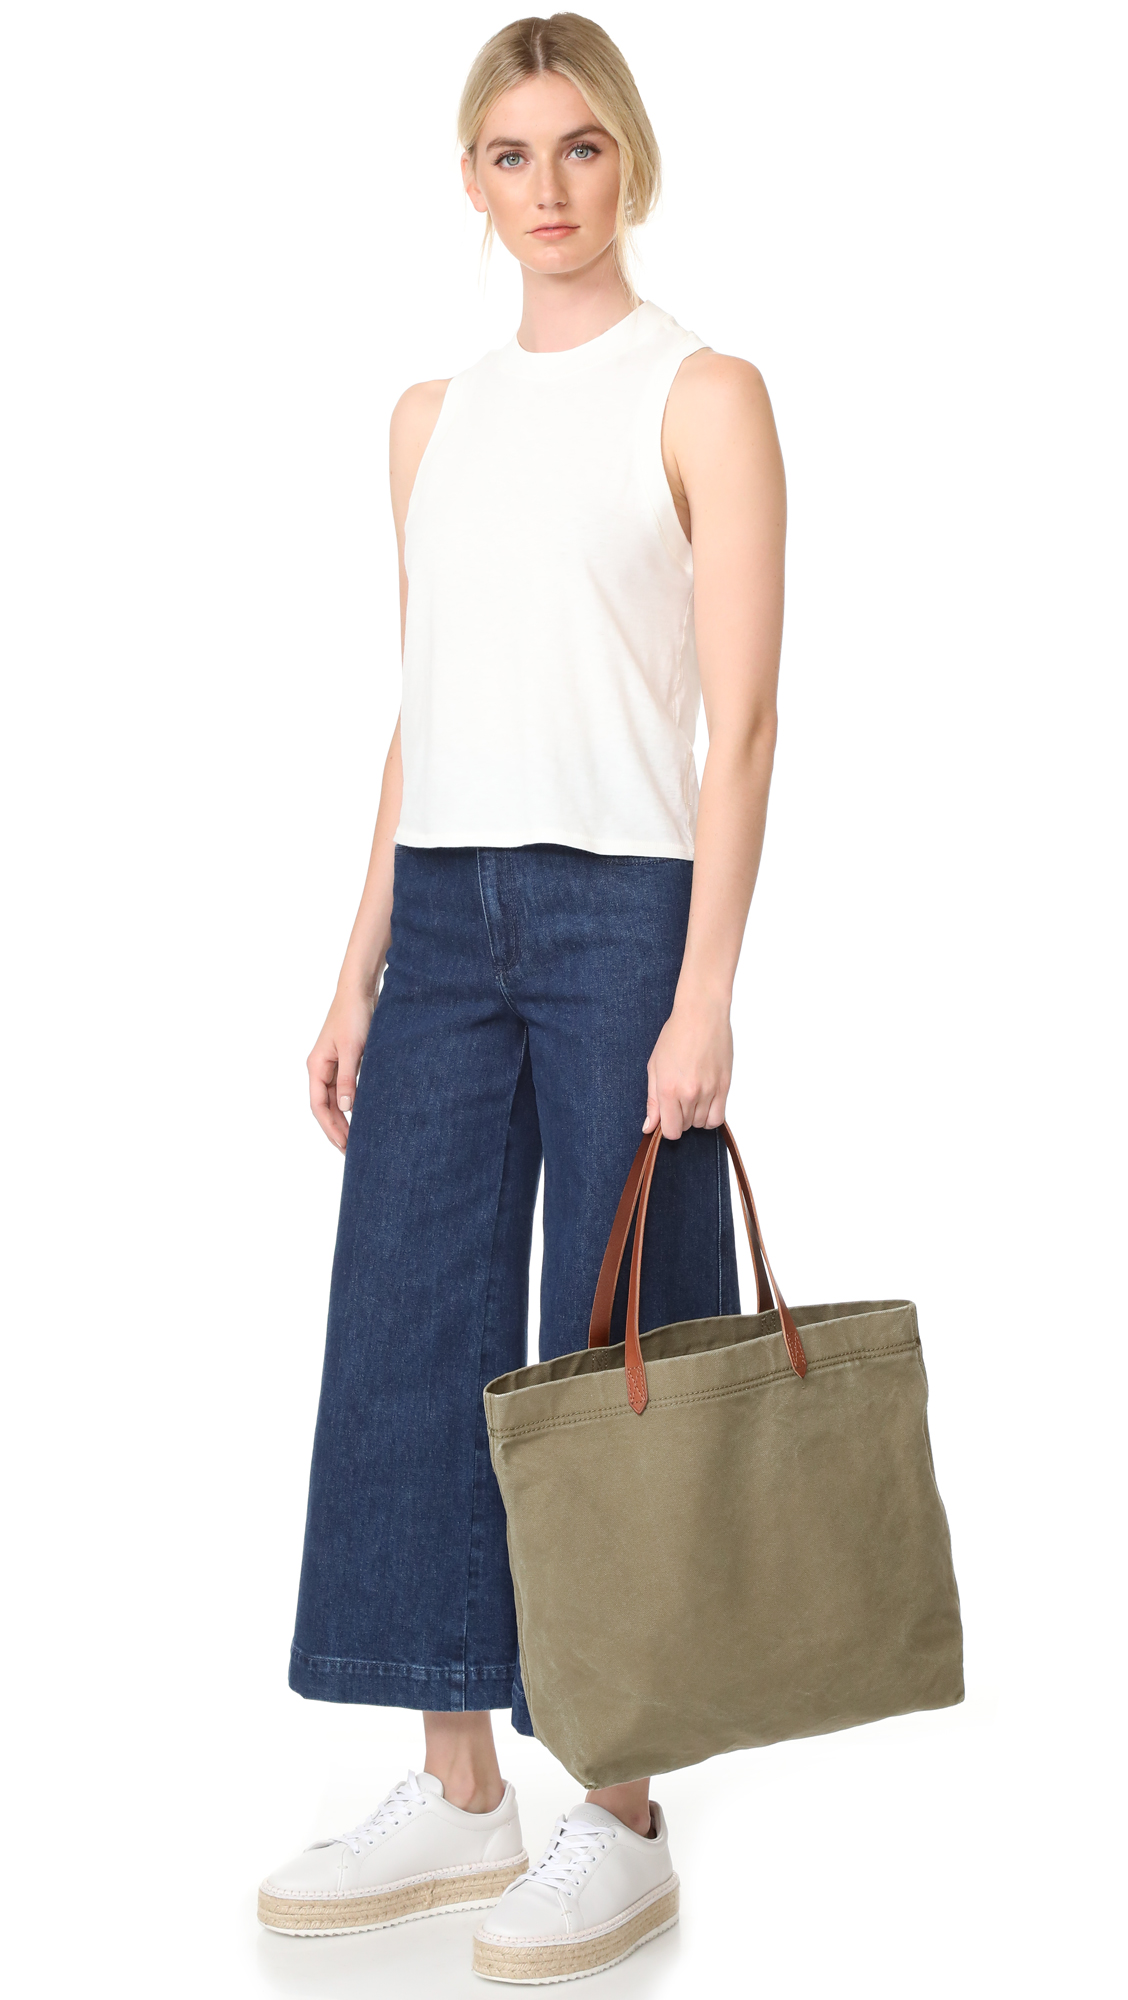 Madewell Canvas Transport Tote  ea6f90ff34c84